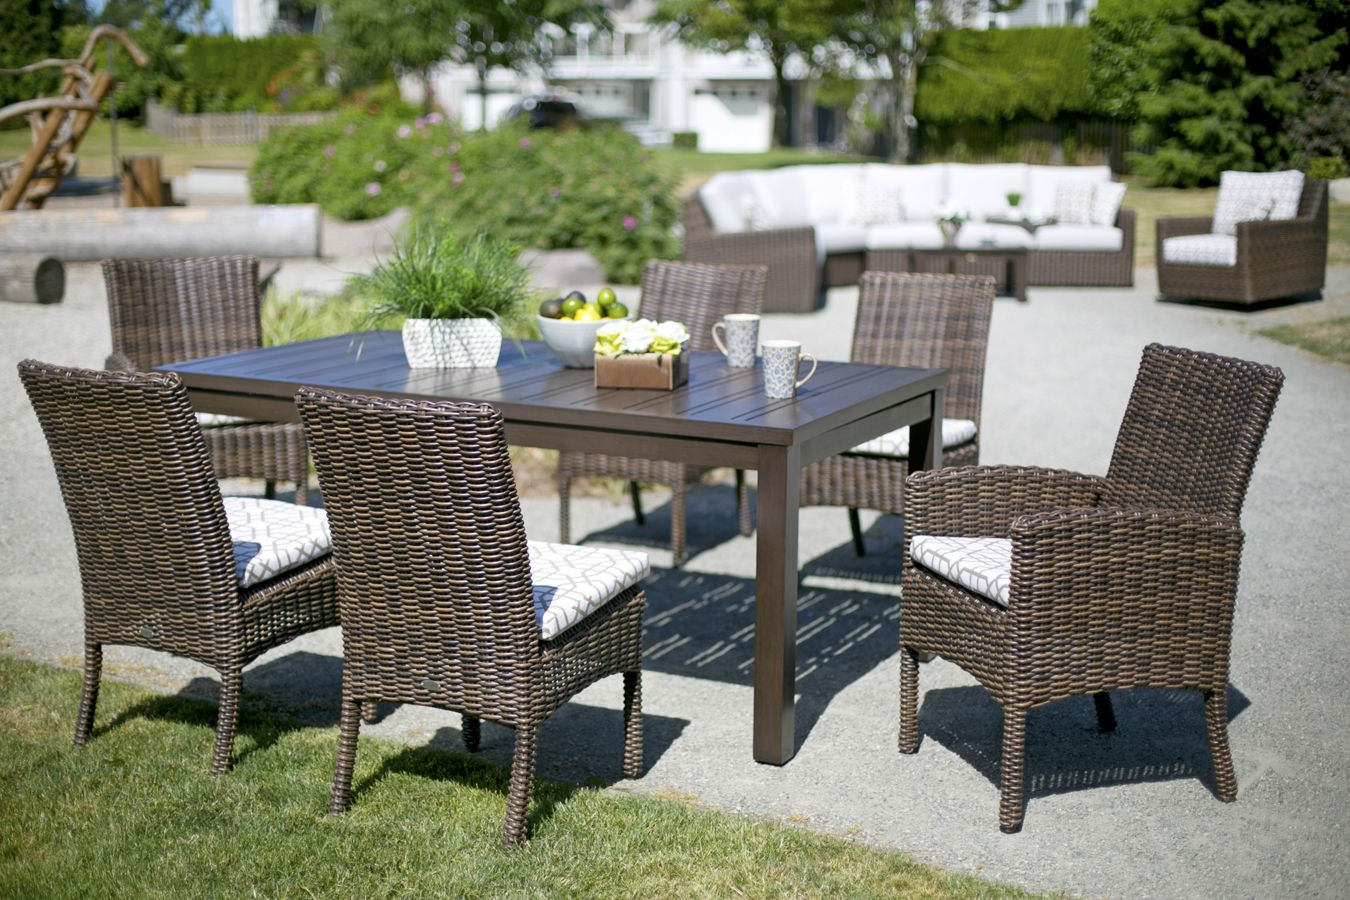 Lovely Casa Camino All Weather Resin Wicker Patio Furniture   Wicker Land Patio